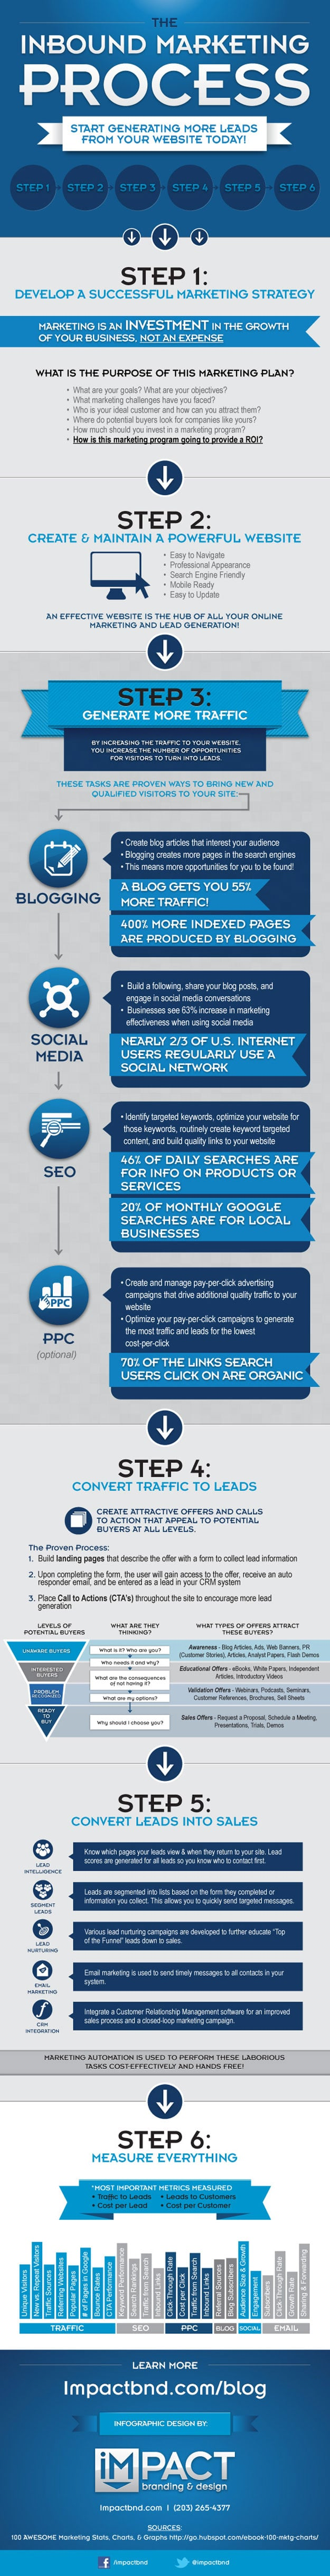 Inbound-Marketing-Process-Infographic-2012